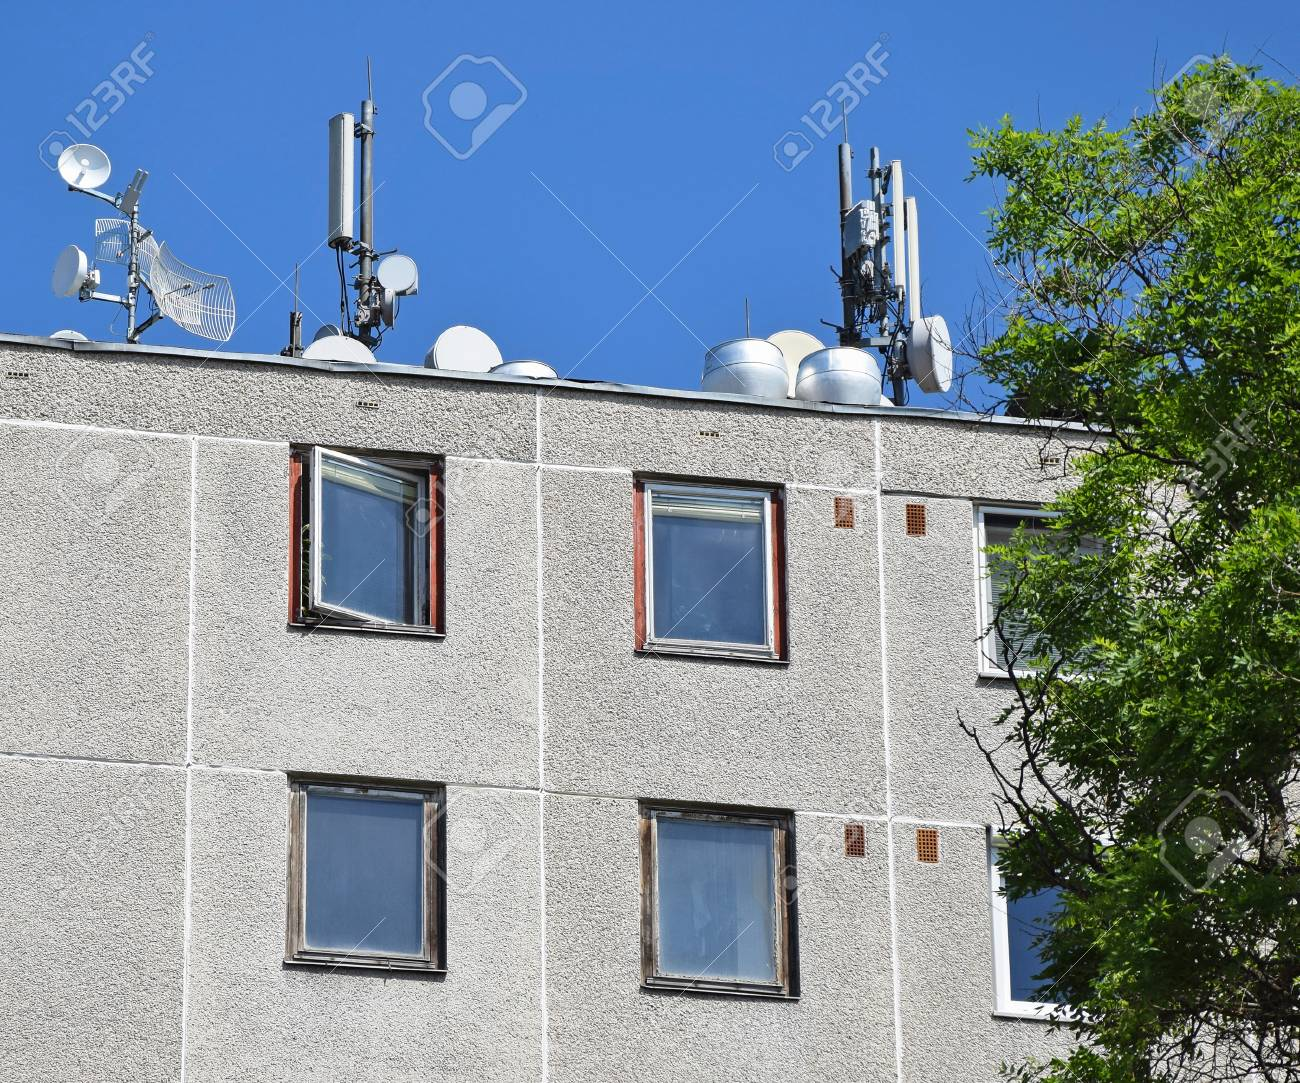 Antennas On The Top Of An Apartment Building Stock Photo ...